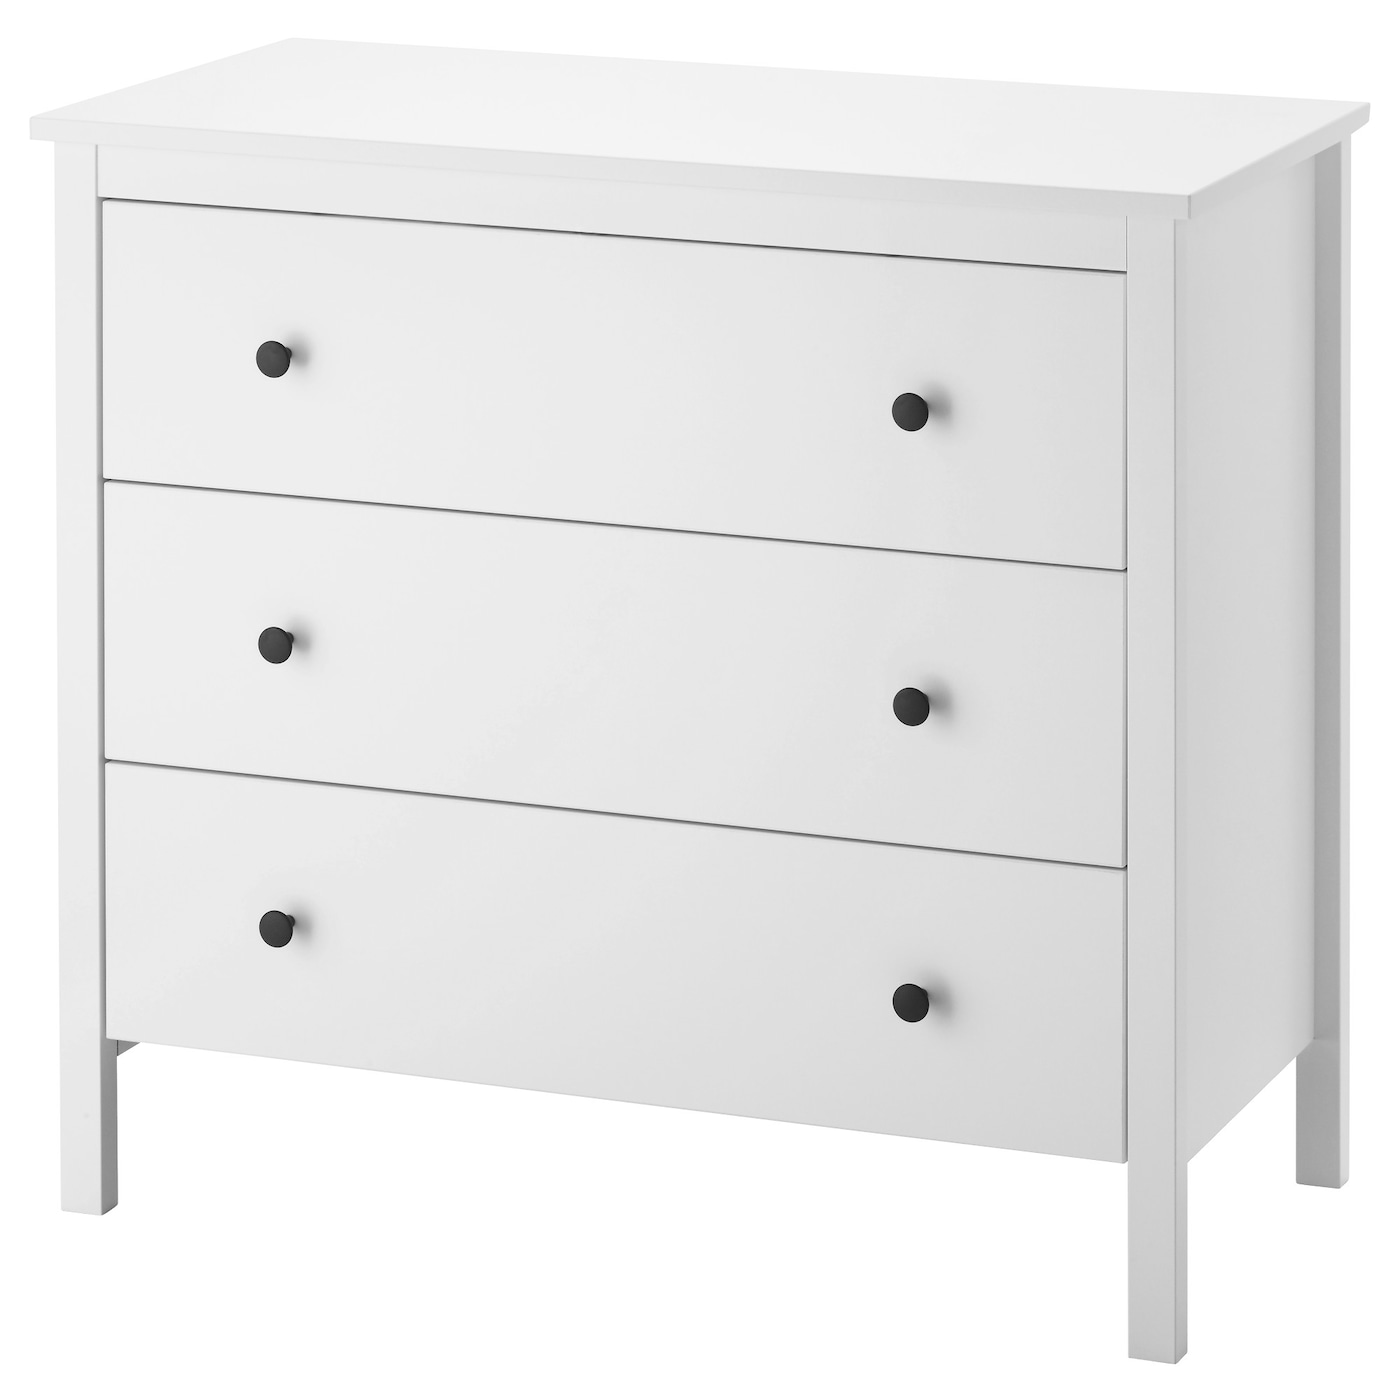 IKEA KOPPANG chest of 3 drawers. KOPPANG Chest of 3 drawers White 90x83 cm   IKEA